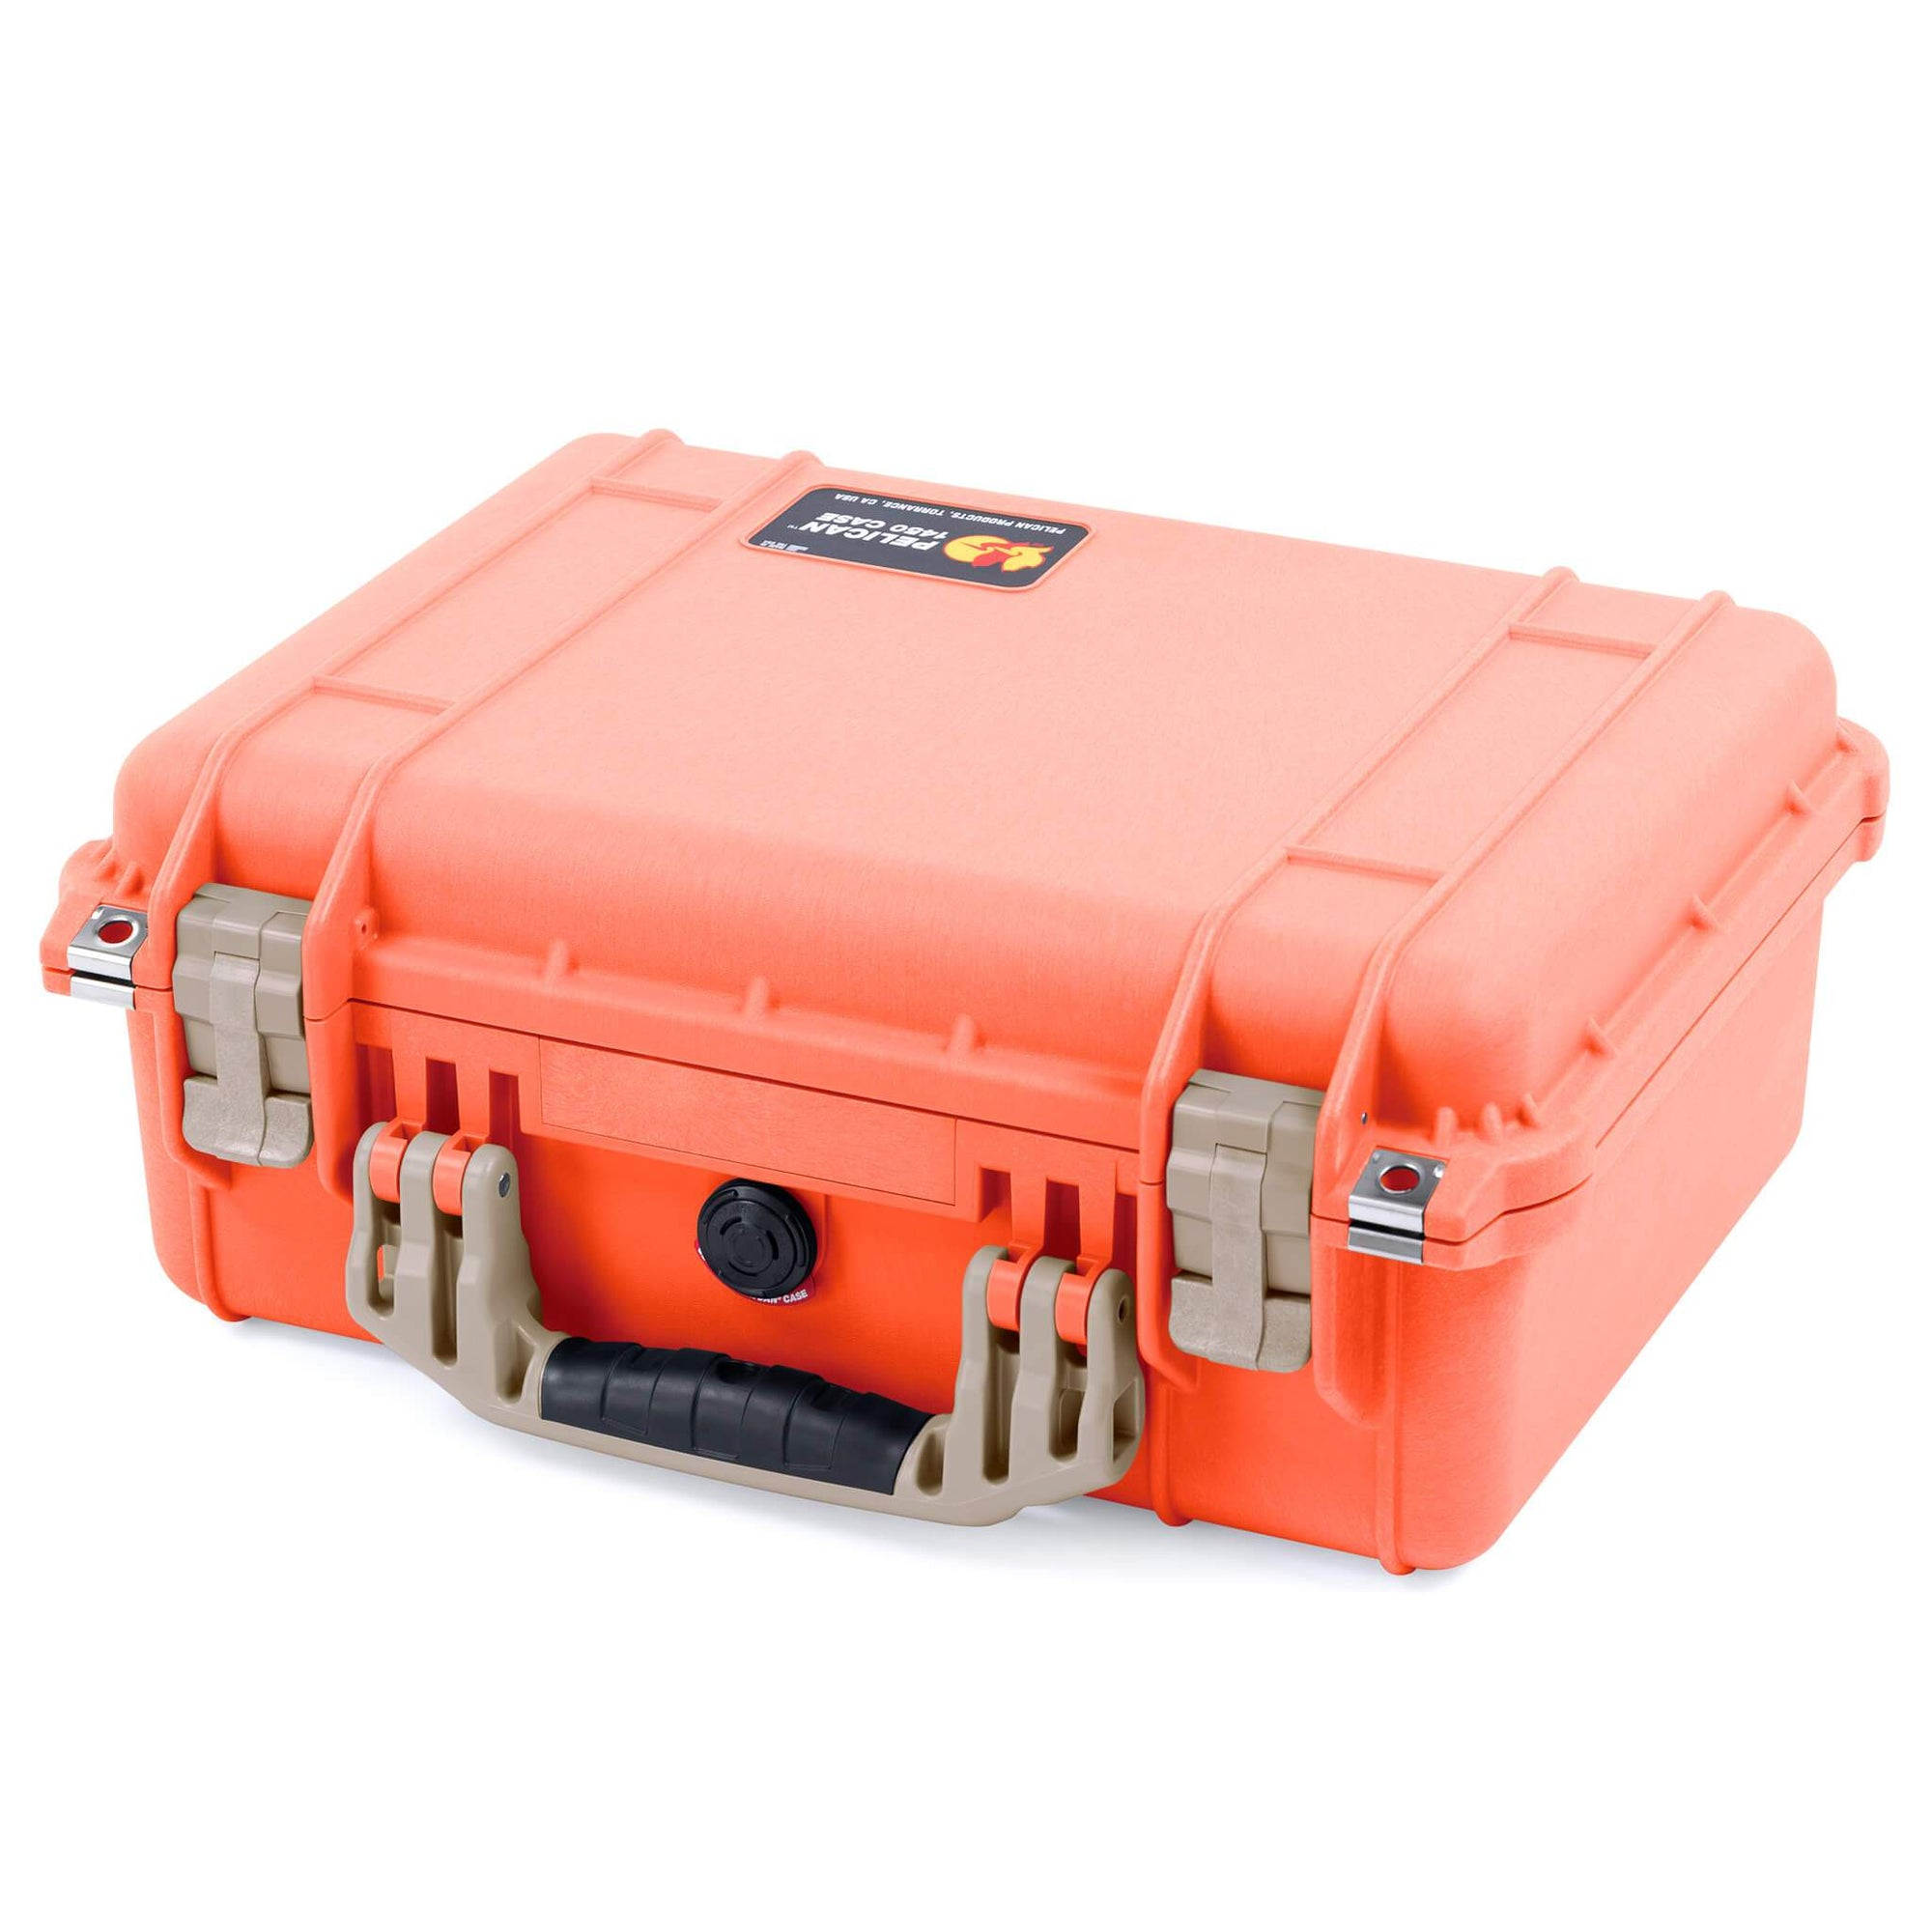 Pelican 1450 Case, Orange with Desert Tan Handle & Latches - Pelican Color Case